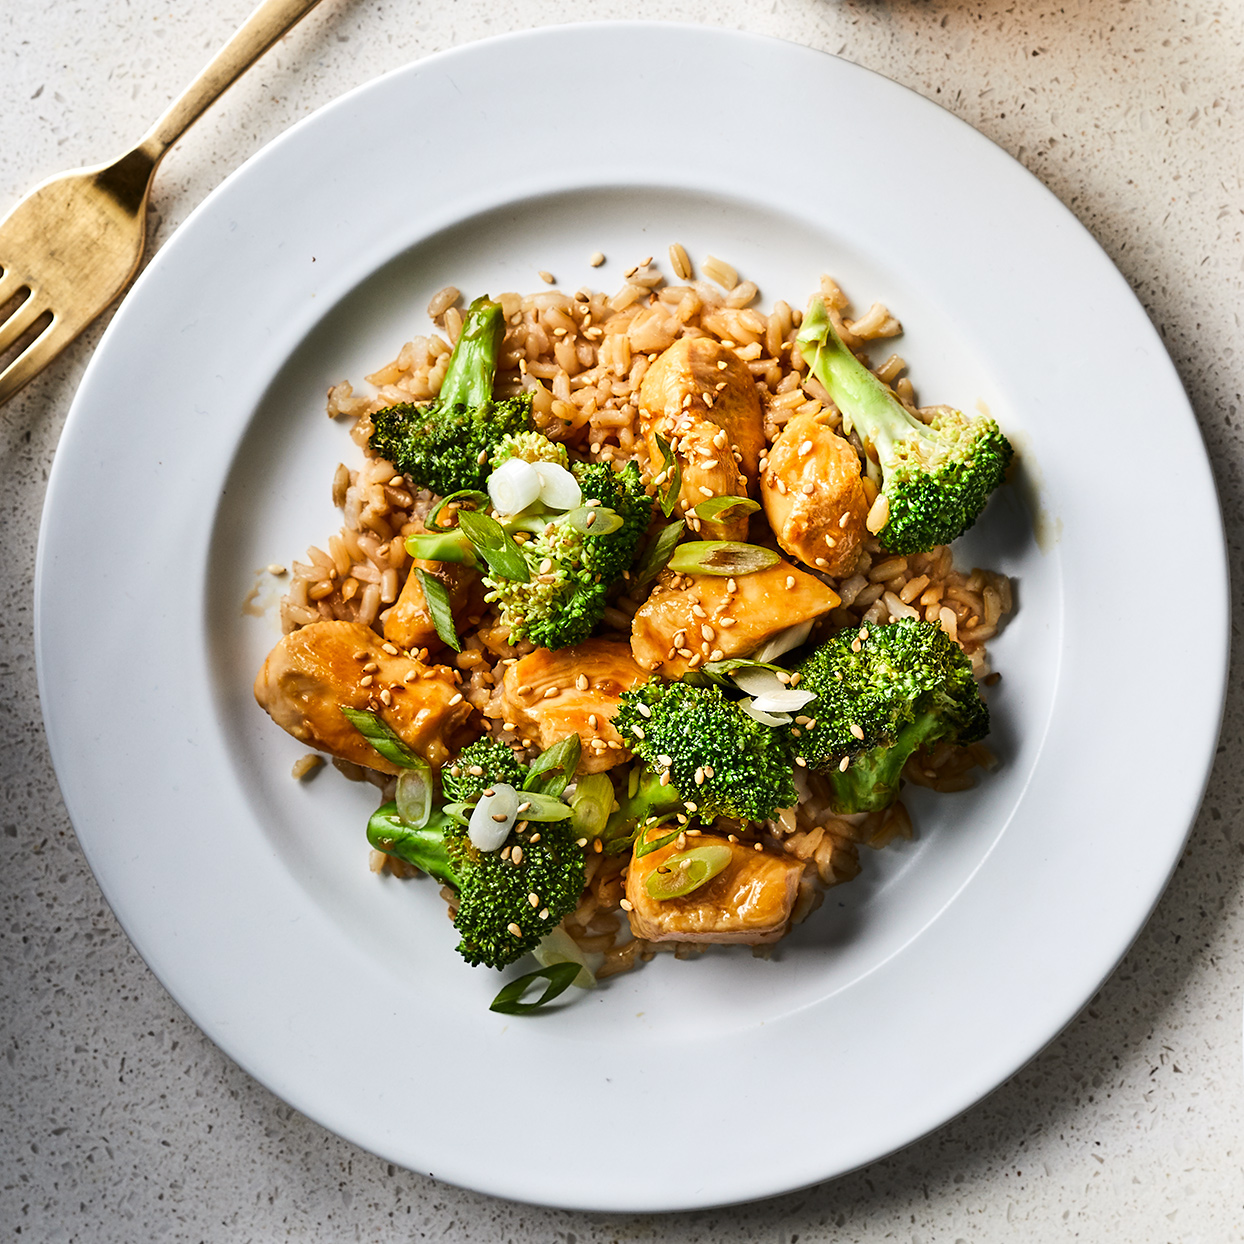 Gluten-Free Teriyaki Chicken with Broccoli